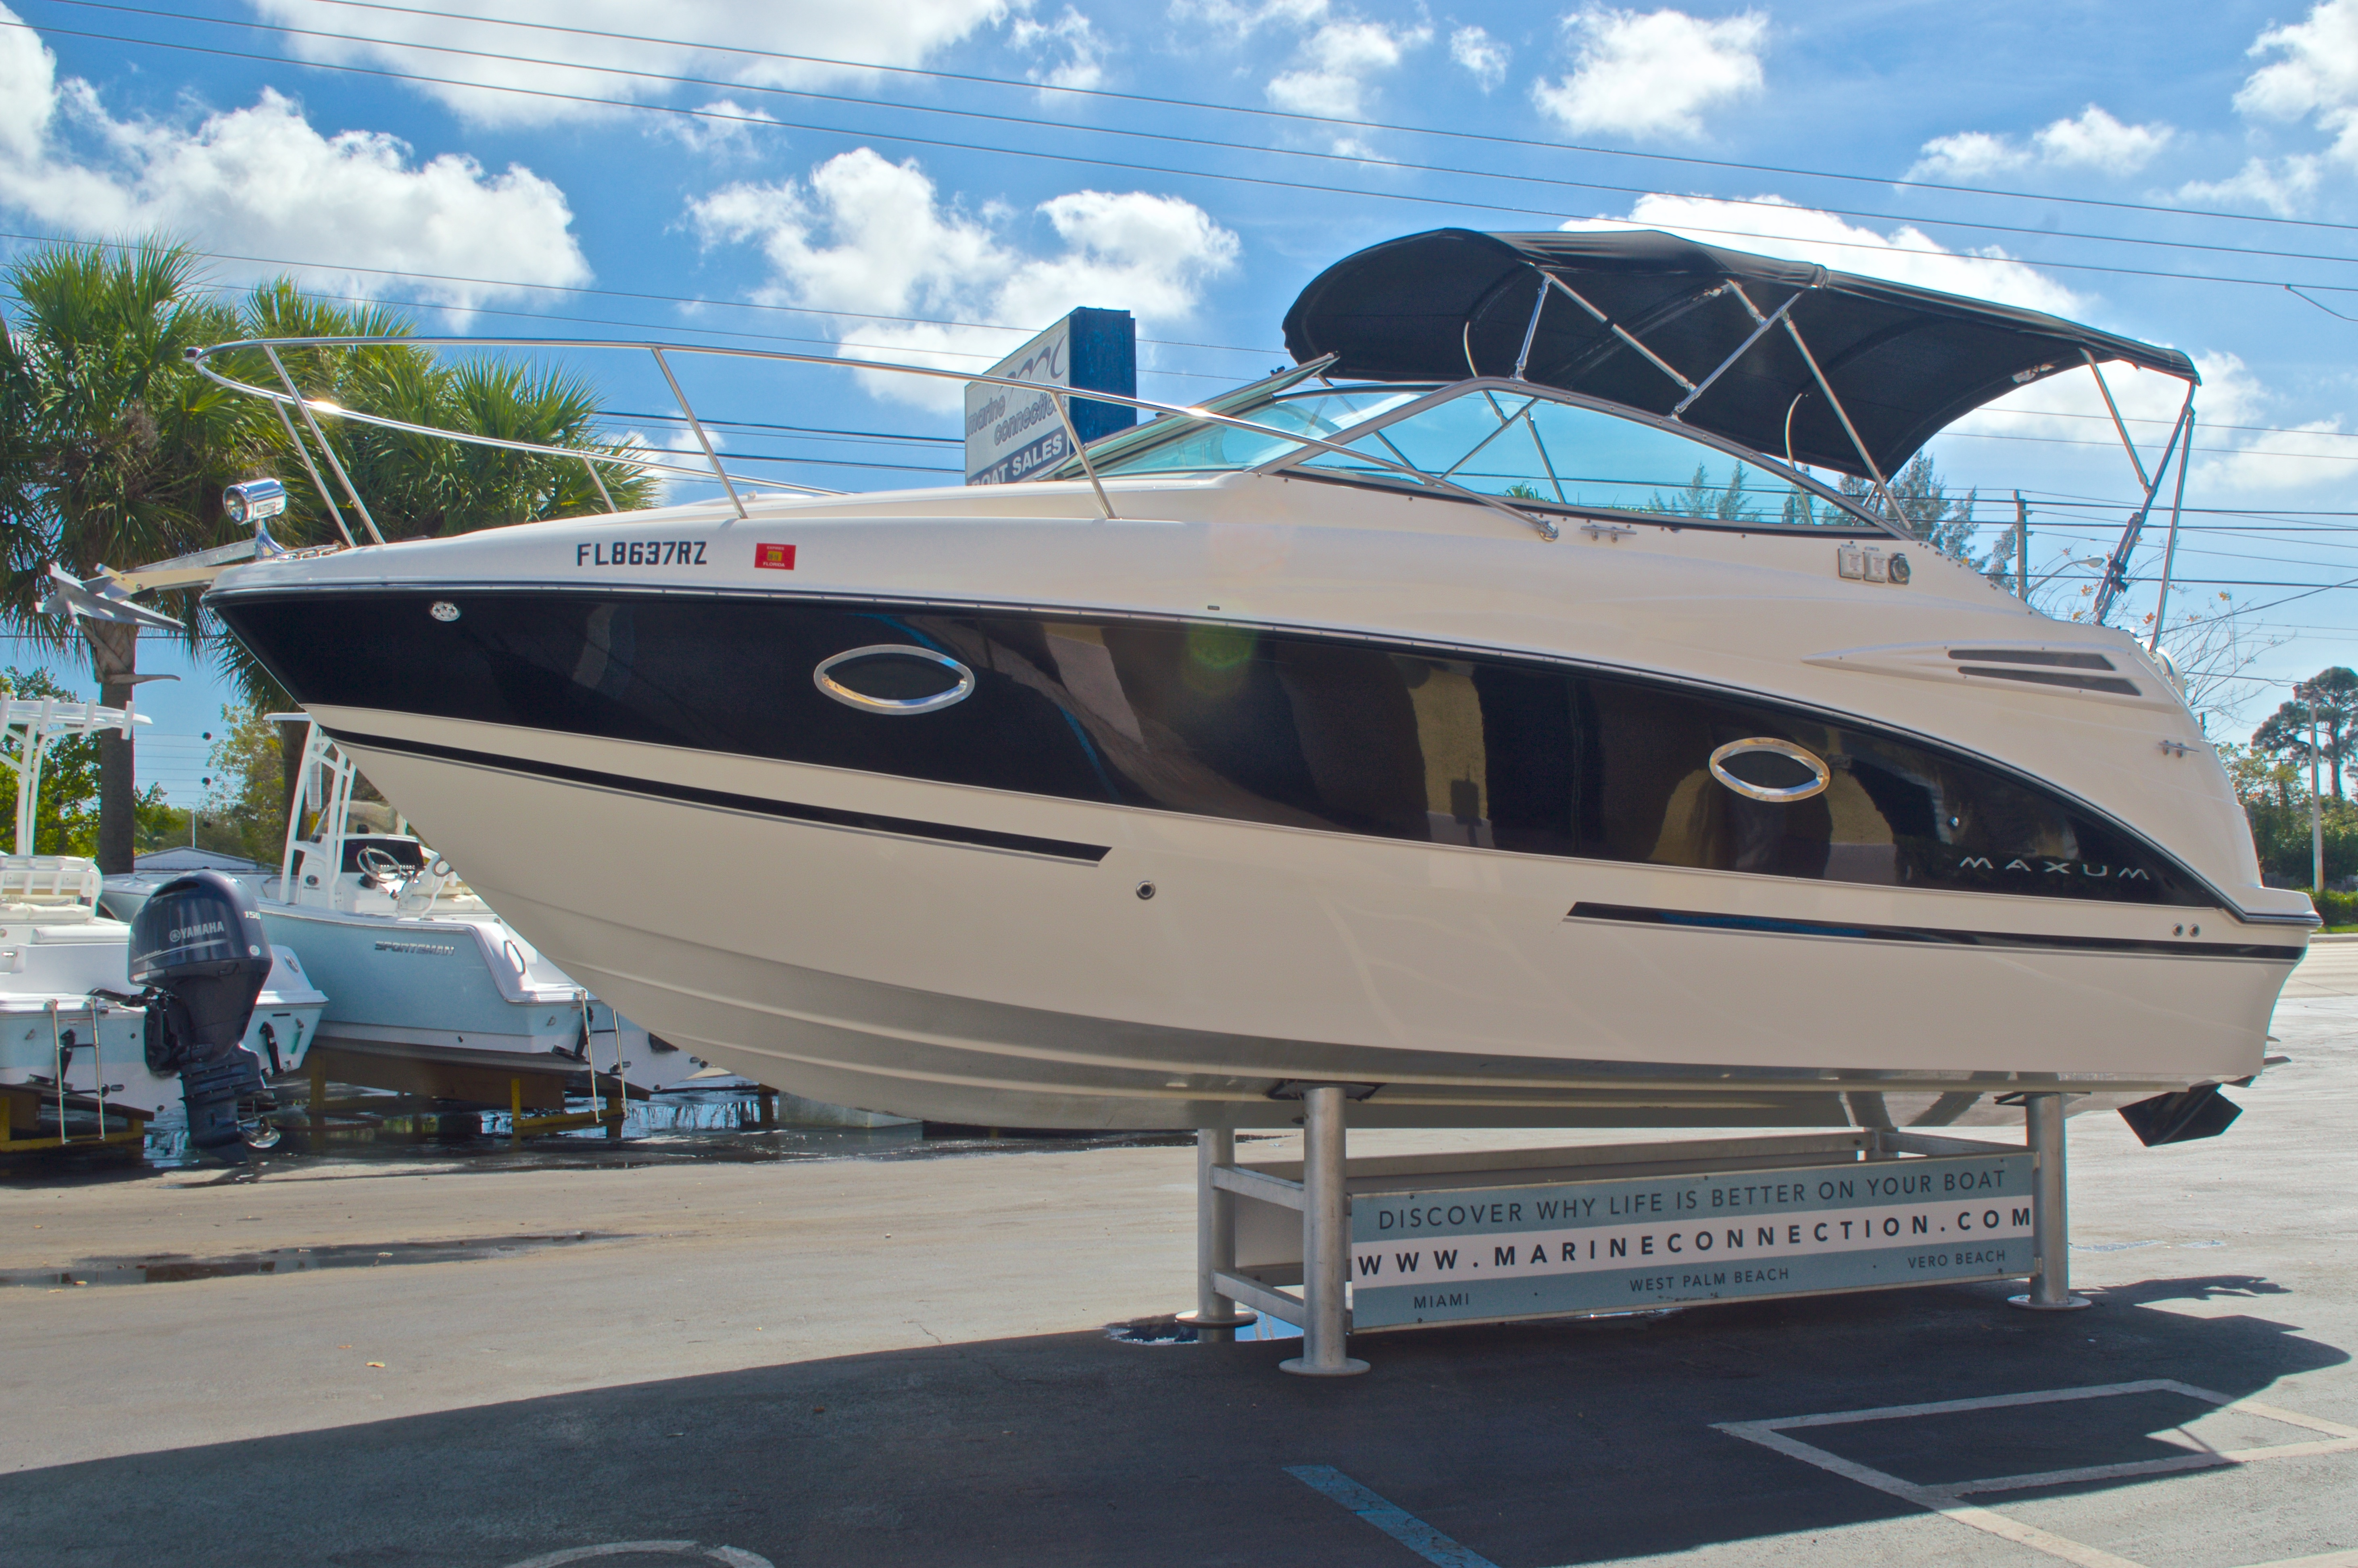 Thumbnail 4 for Used 2007 Maxum 2400 SE boat for sale in West Palm Beach, FL